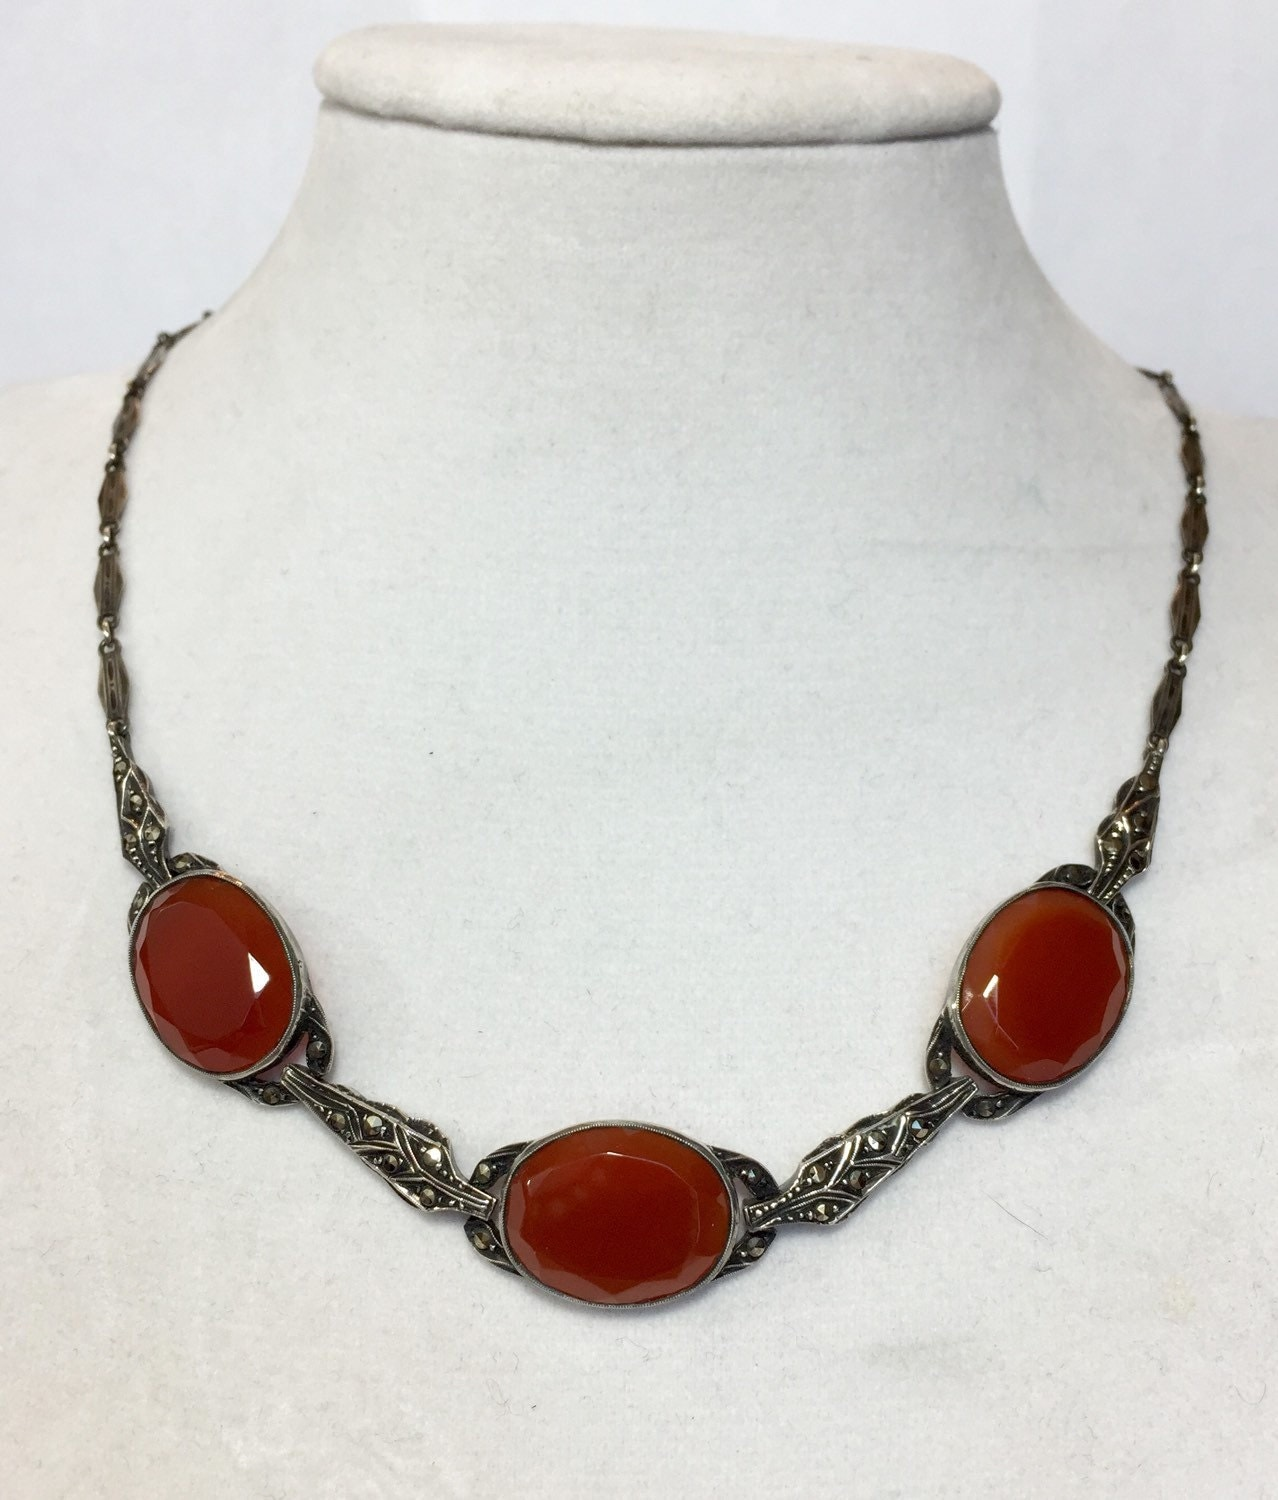 Antique Sterling Silver Carnelian Necklace Vintage Art Deco